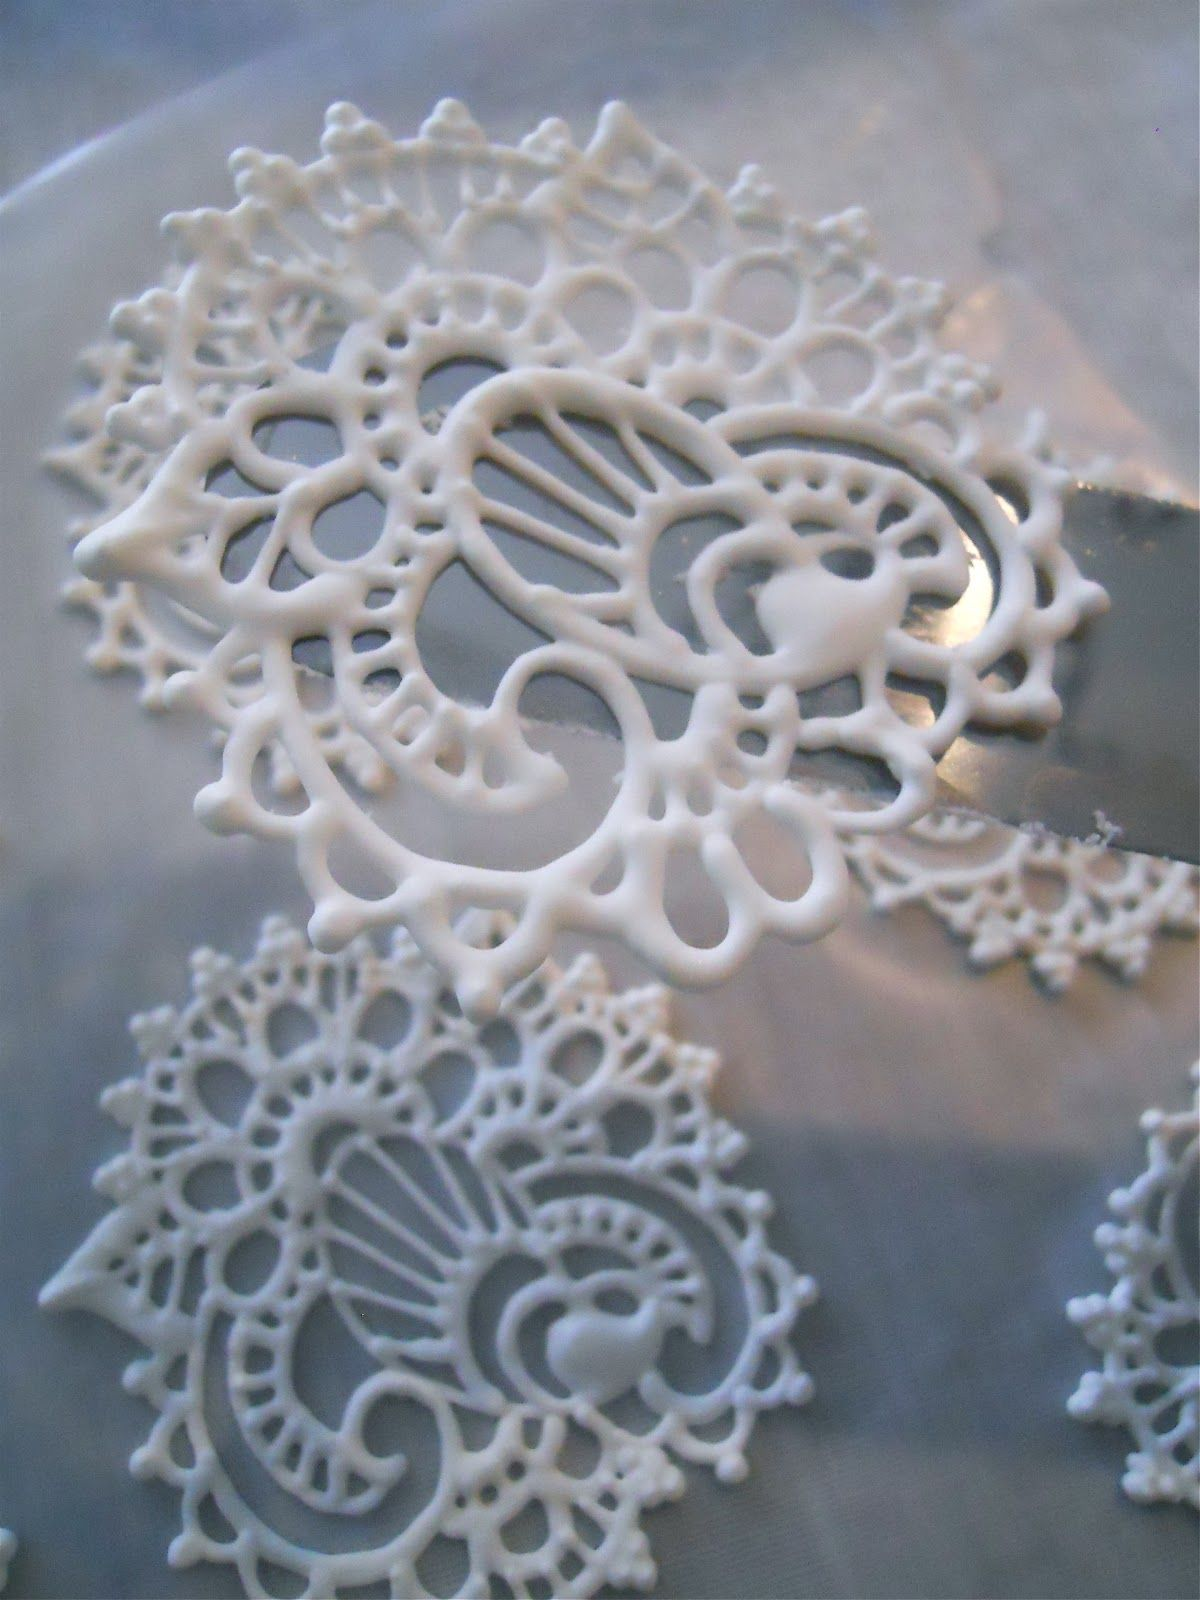 Mehndi Patterns For Cakes : Royal icing lace designs for decorating cakes a lower